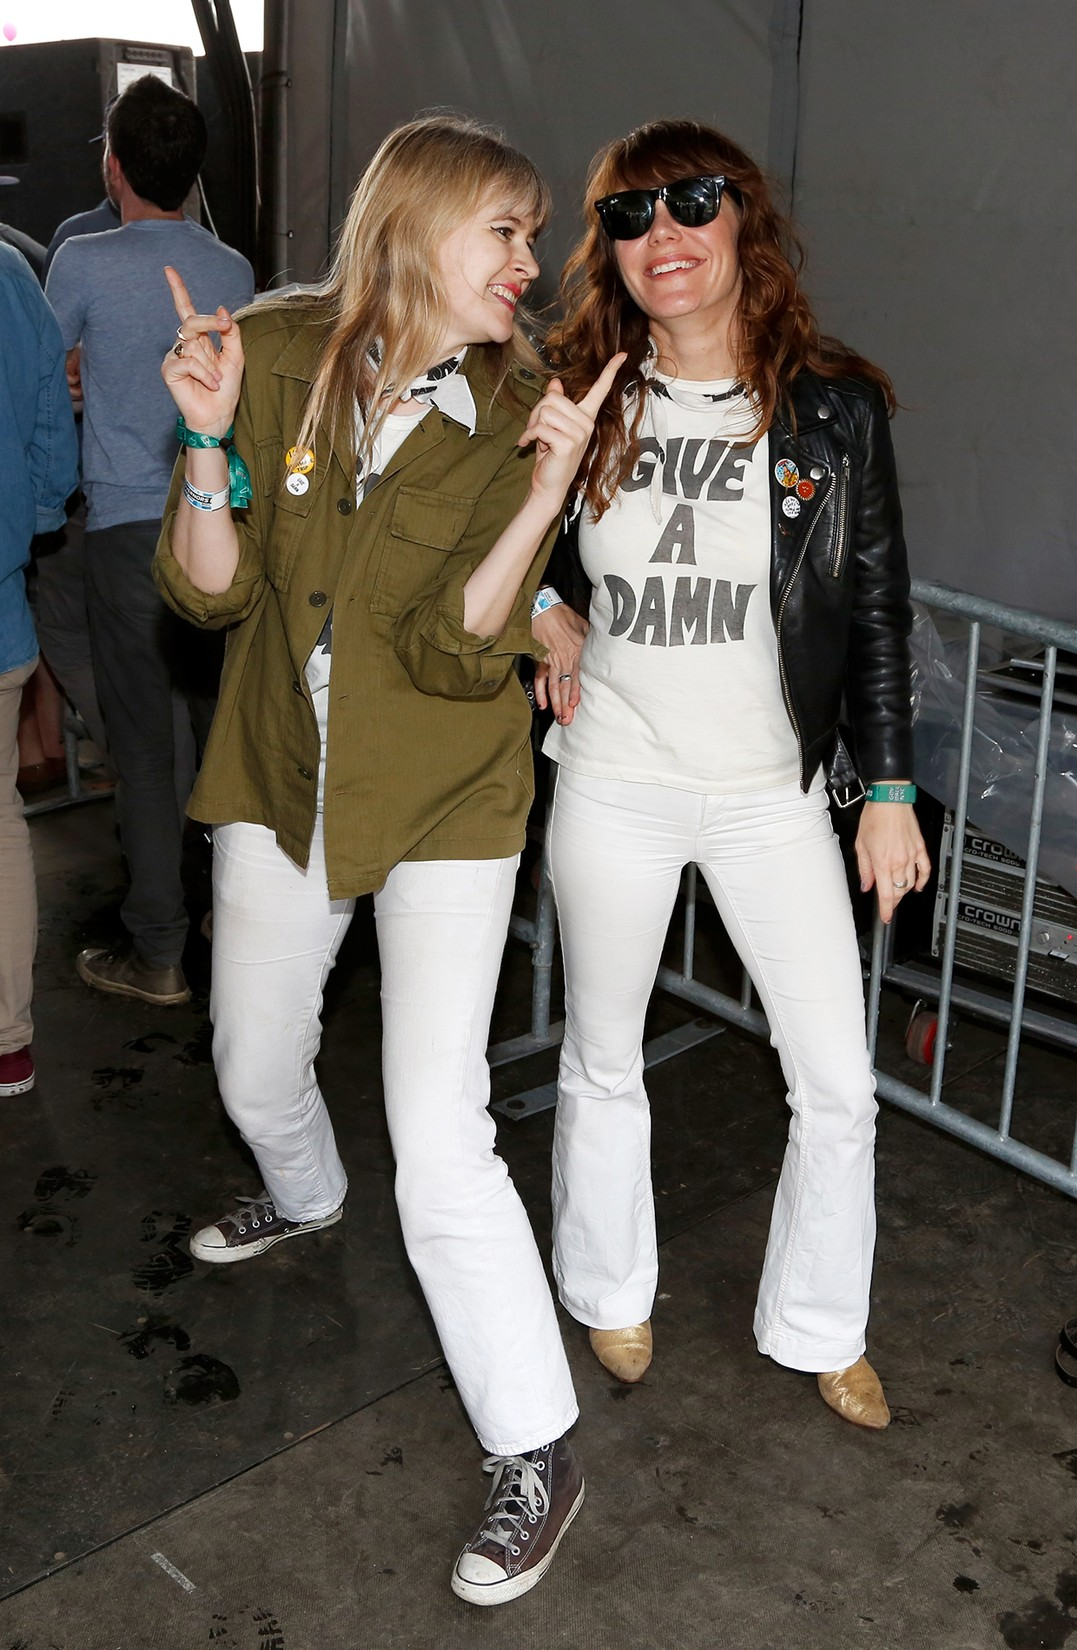 Tennessee Thomas and Jenny Lewis